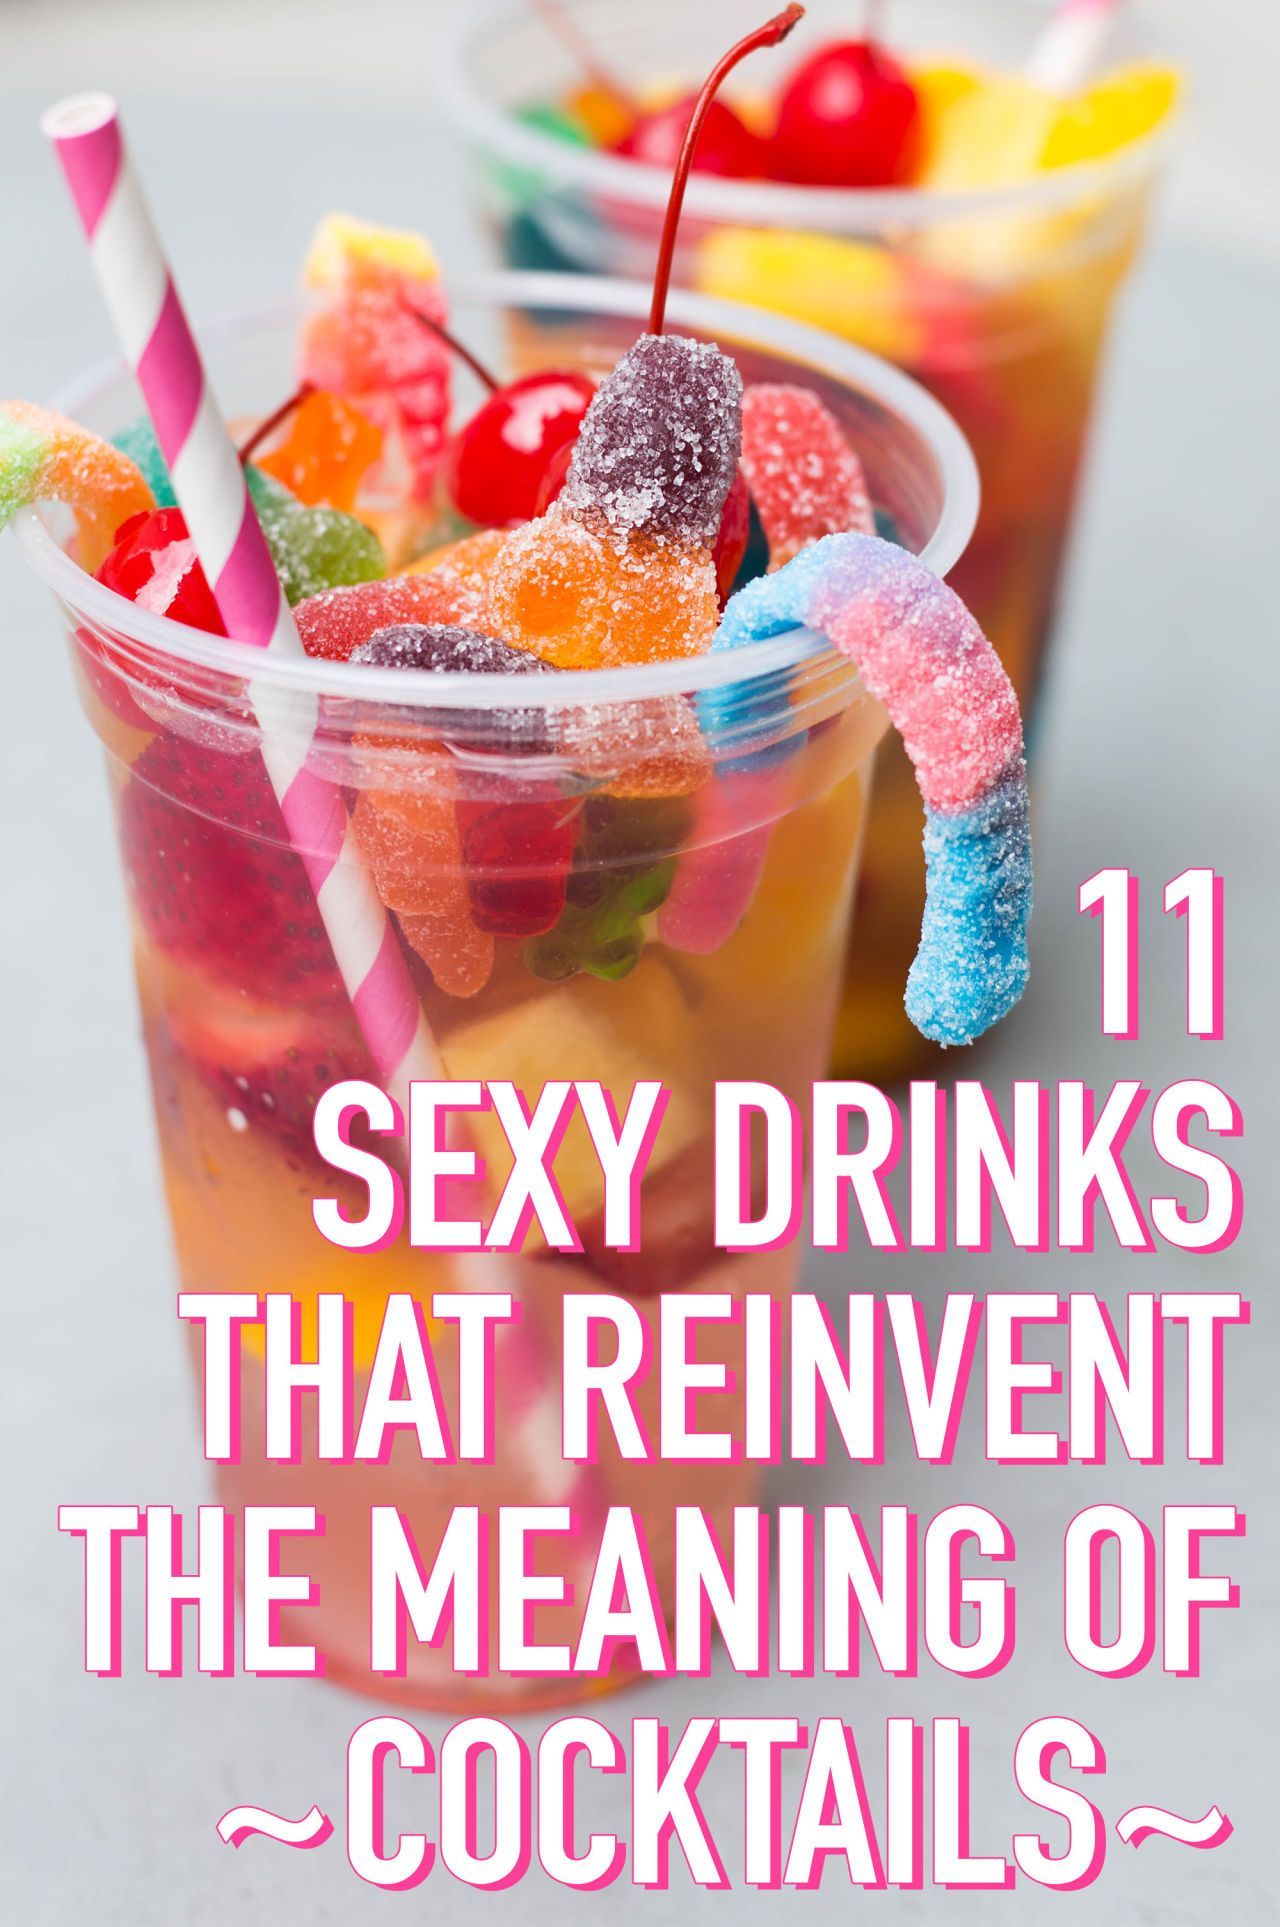 10 Sexy Drinks That Reinvent The Meaning Of Cocktails